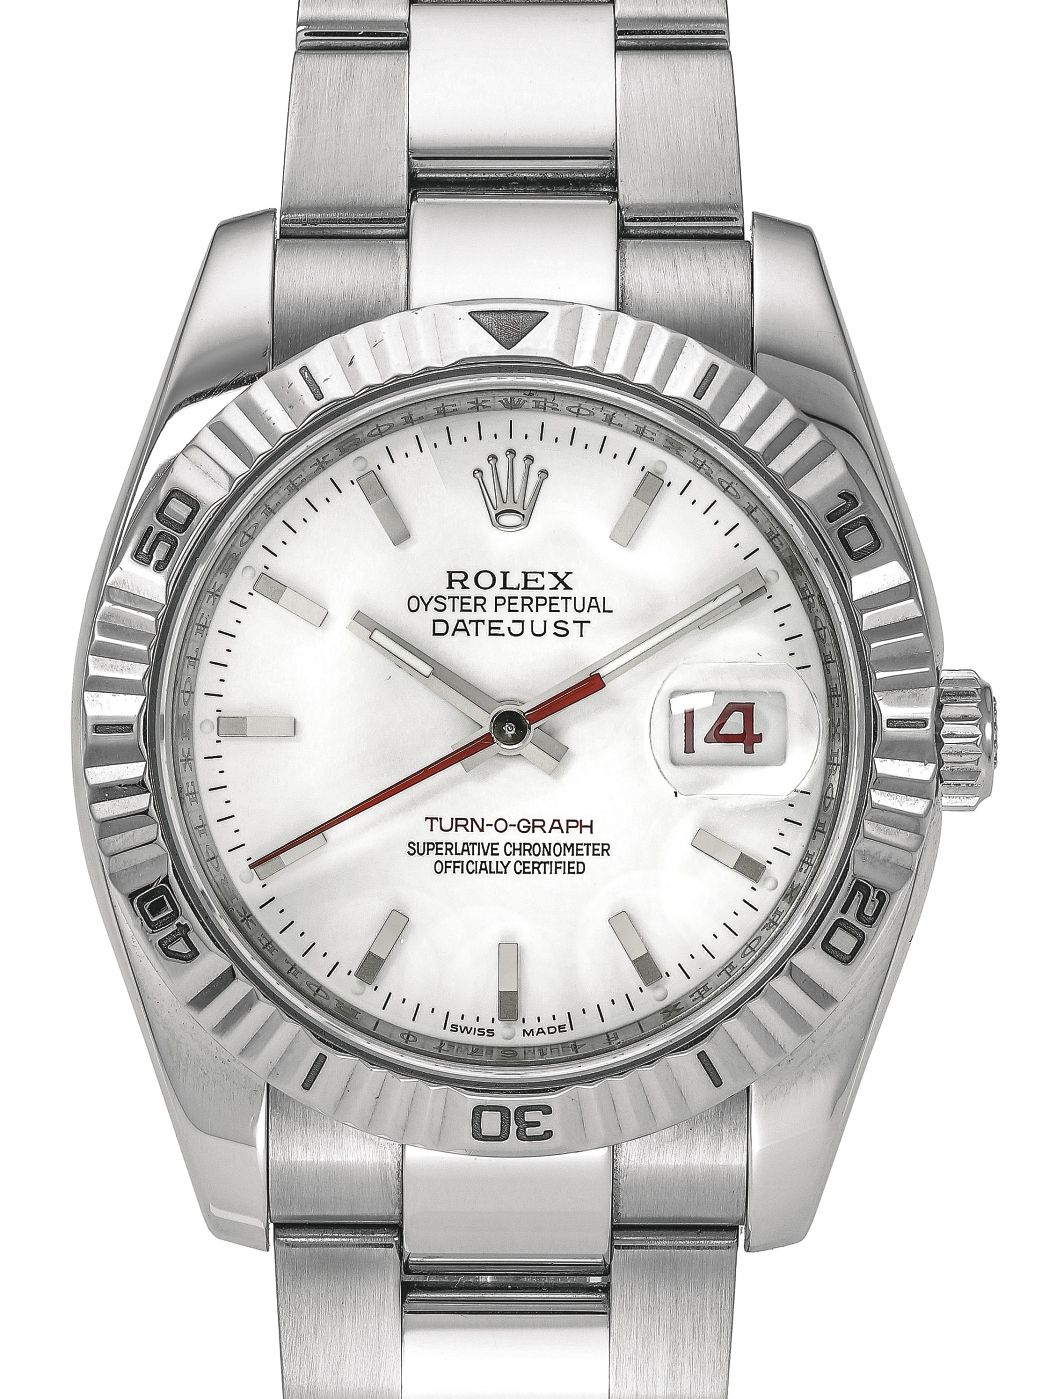 Rolex Datejust Turn-o-graph Ref. 116264